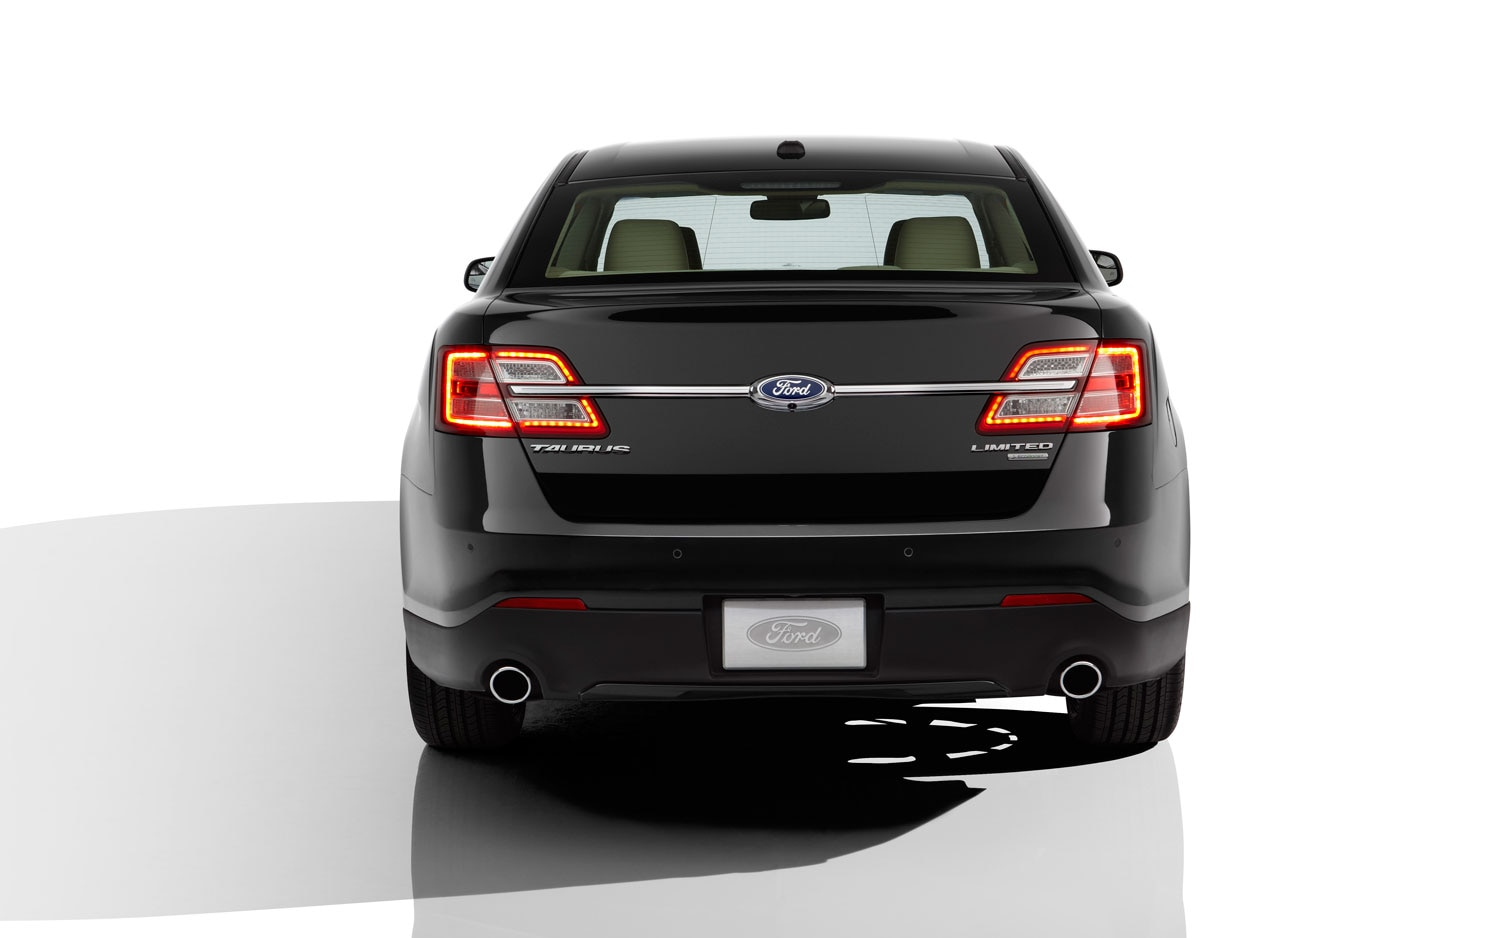 2013 ford taurus rear view 2013 ford taurus first look automobile magazine 2013 ford taurus police interceptor wiring diagram at bakdesigns.co